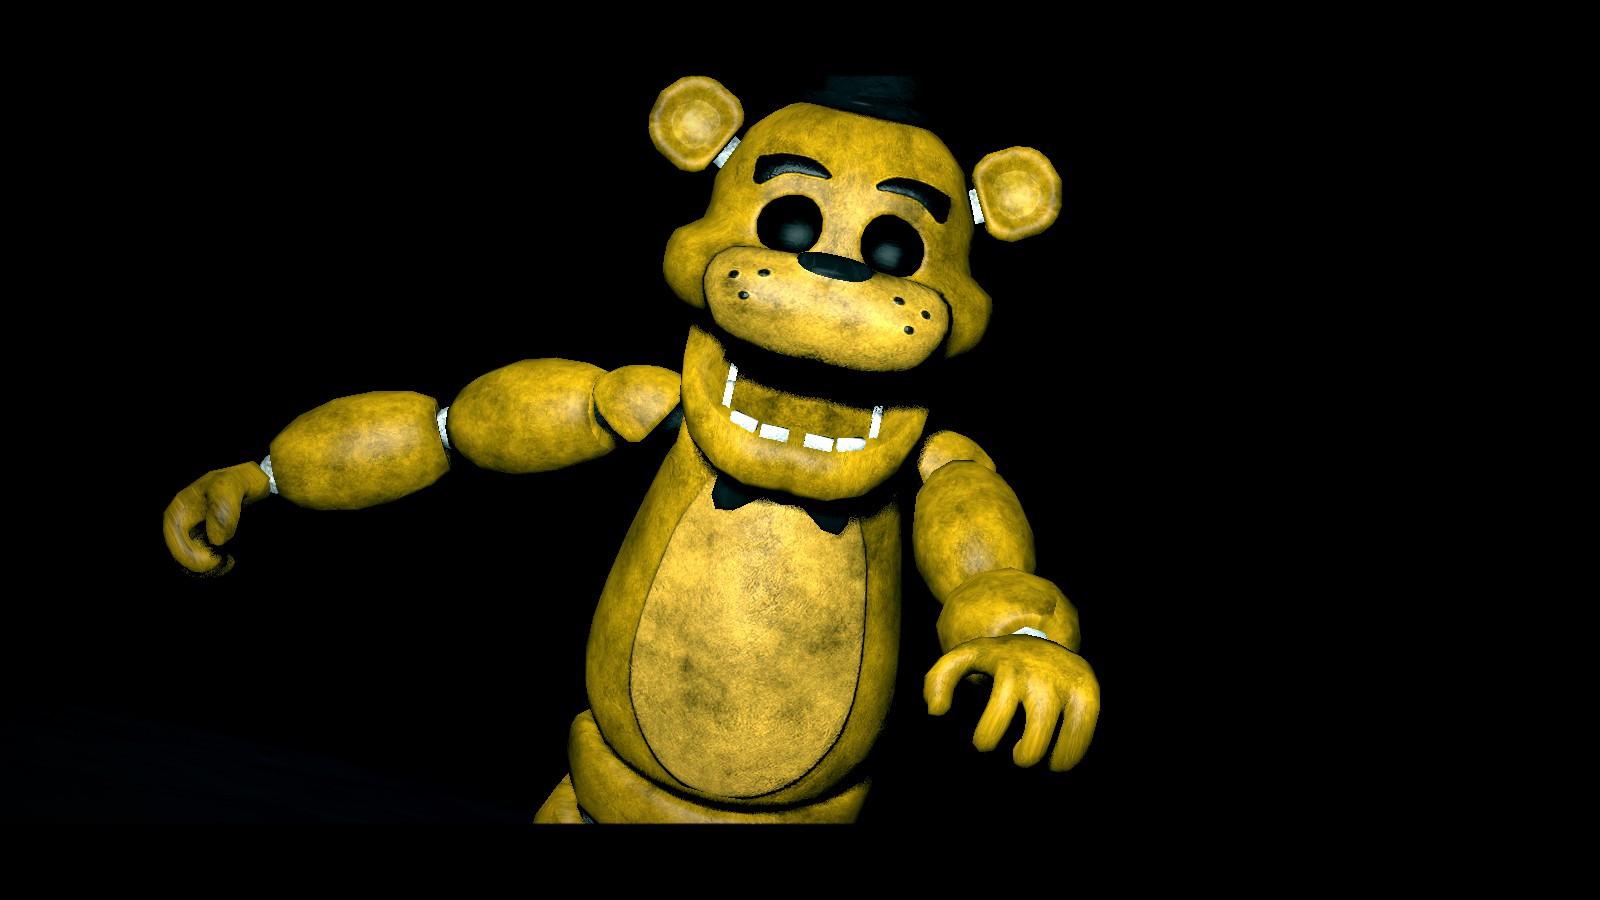 golden freddy the possessed suit by crazybot1231 1600x900